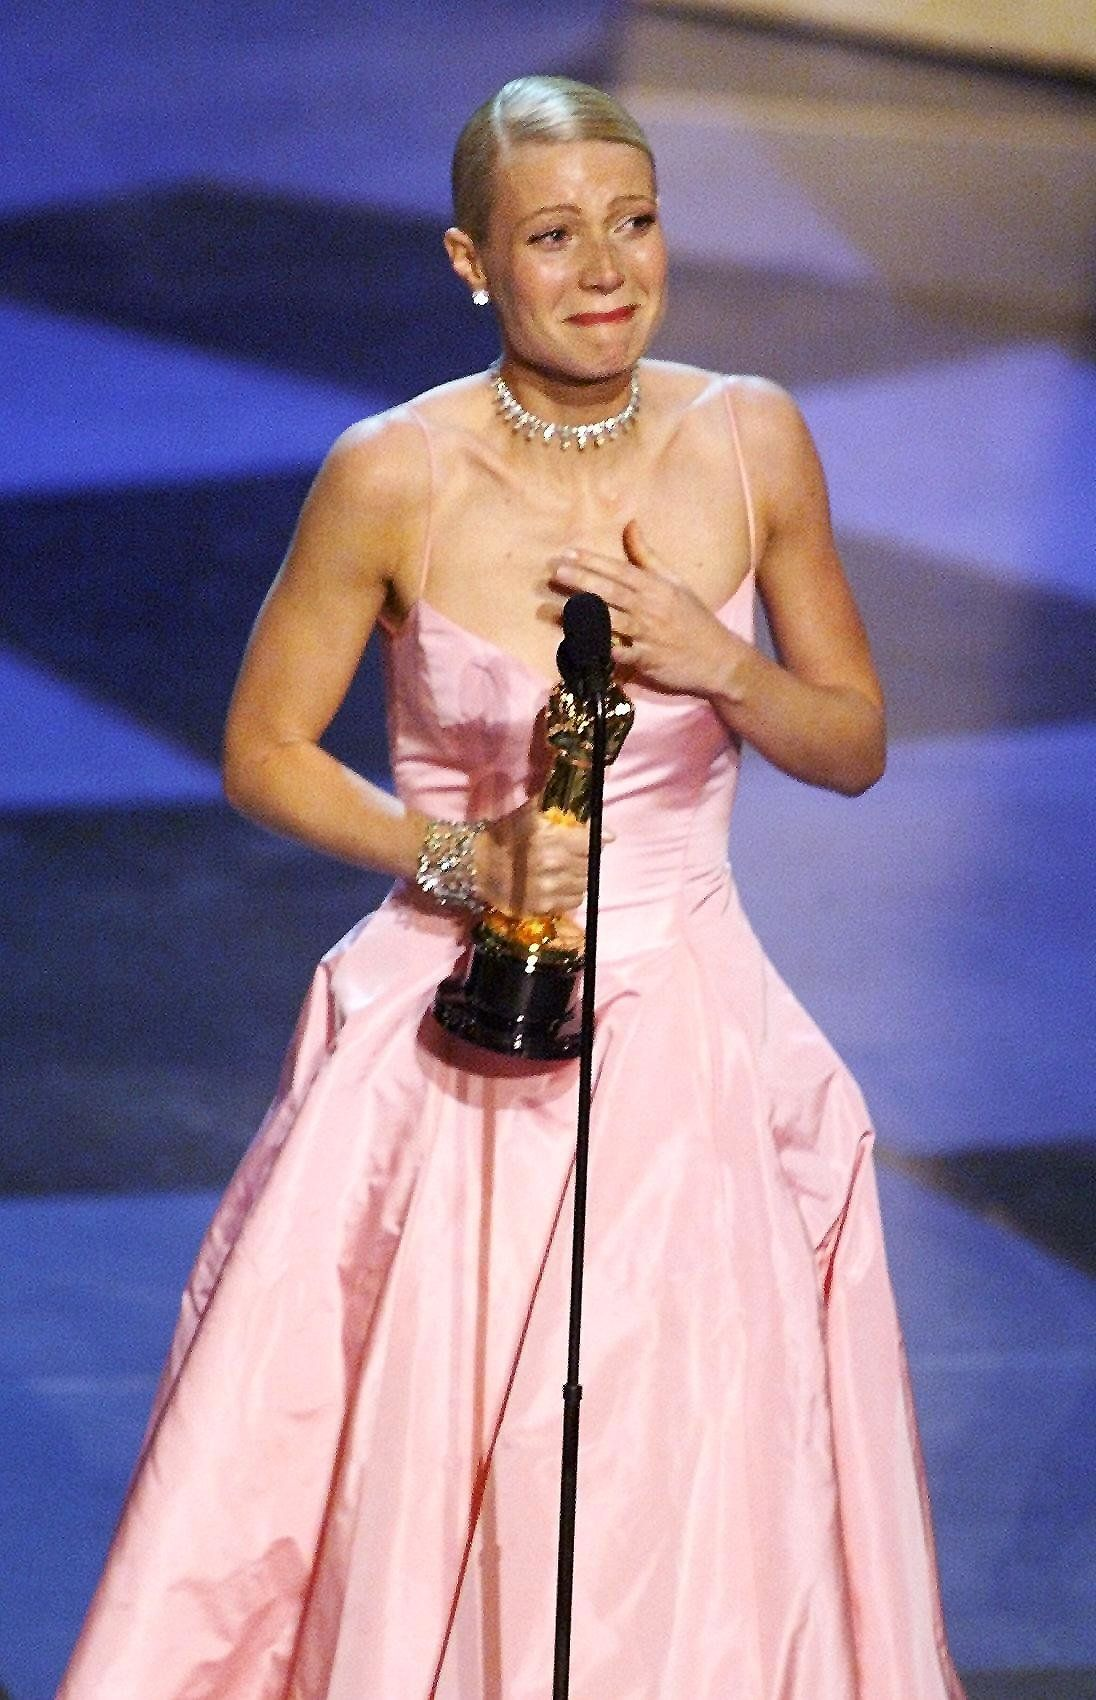 After appearing in around 20 films, Gwyneth finally picked up an Oscar in 1999, for her performance in Shakespeare In Love, and struggled to get her words out through her tears.This would prove to be Gwyneth's only Academy Award nomination (so far, at least!), but at least she managed to get the Oscar on her first try.